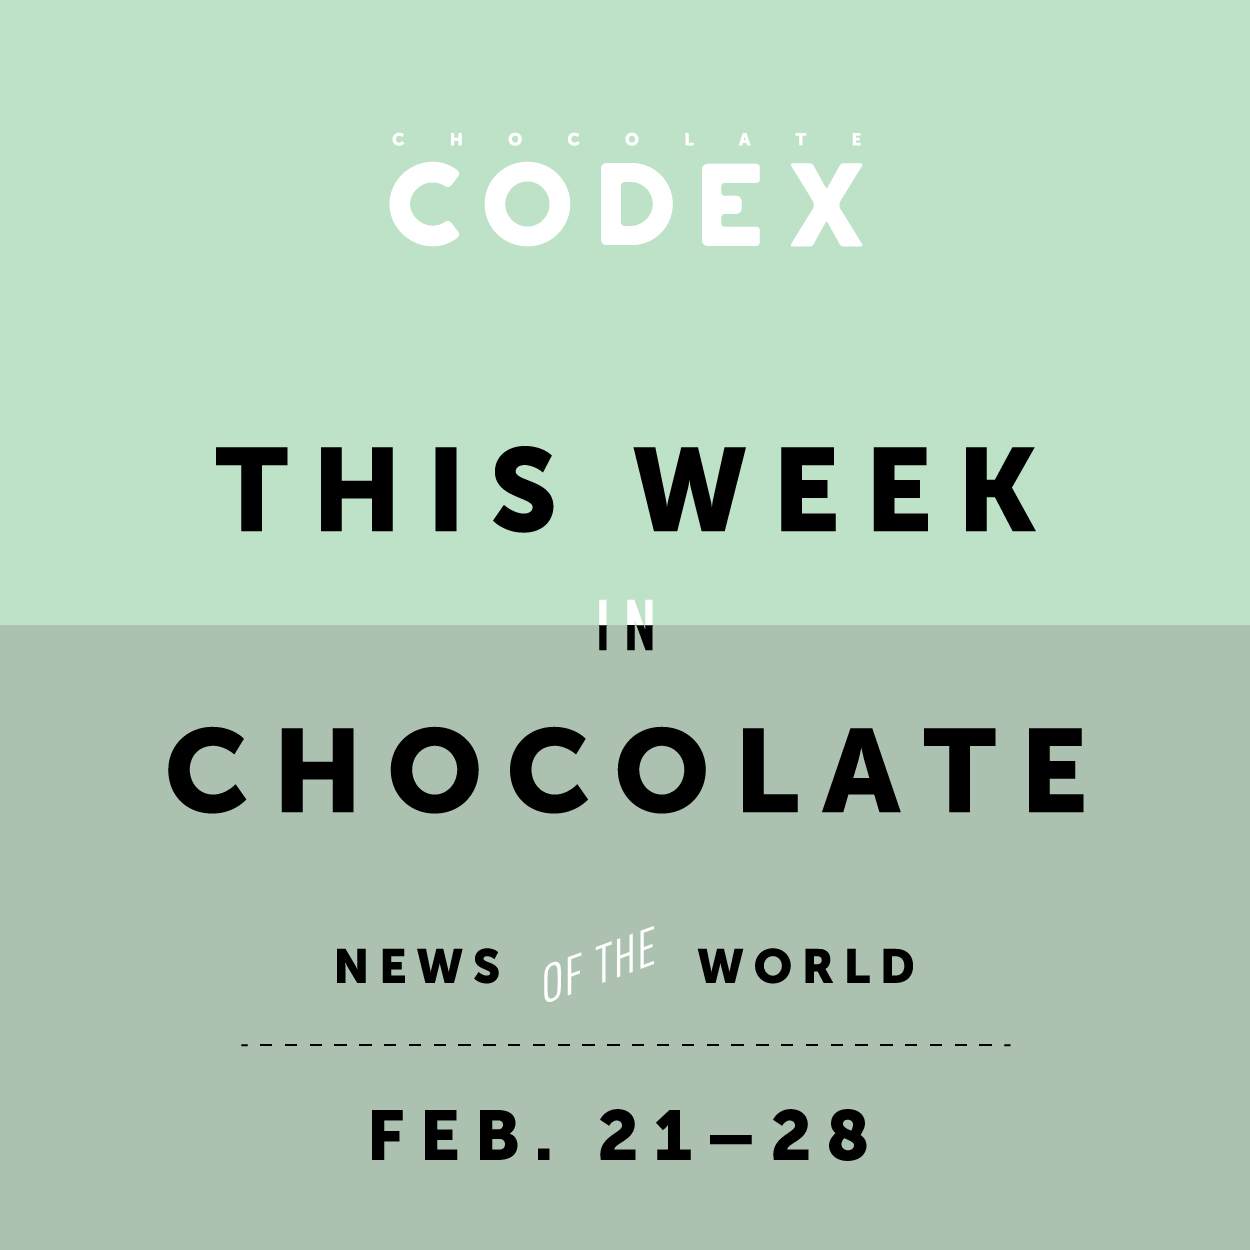 ChocolateCodex_ThisWeek_Chocolate_News_2016_09